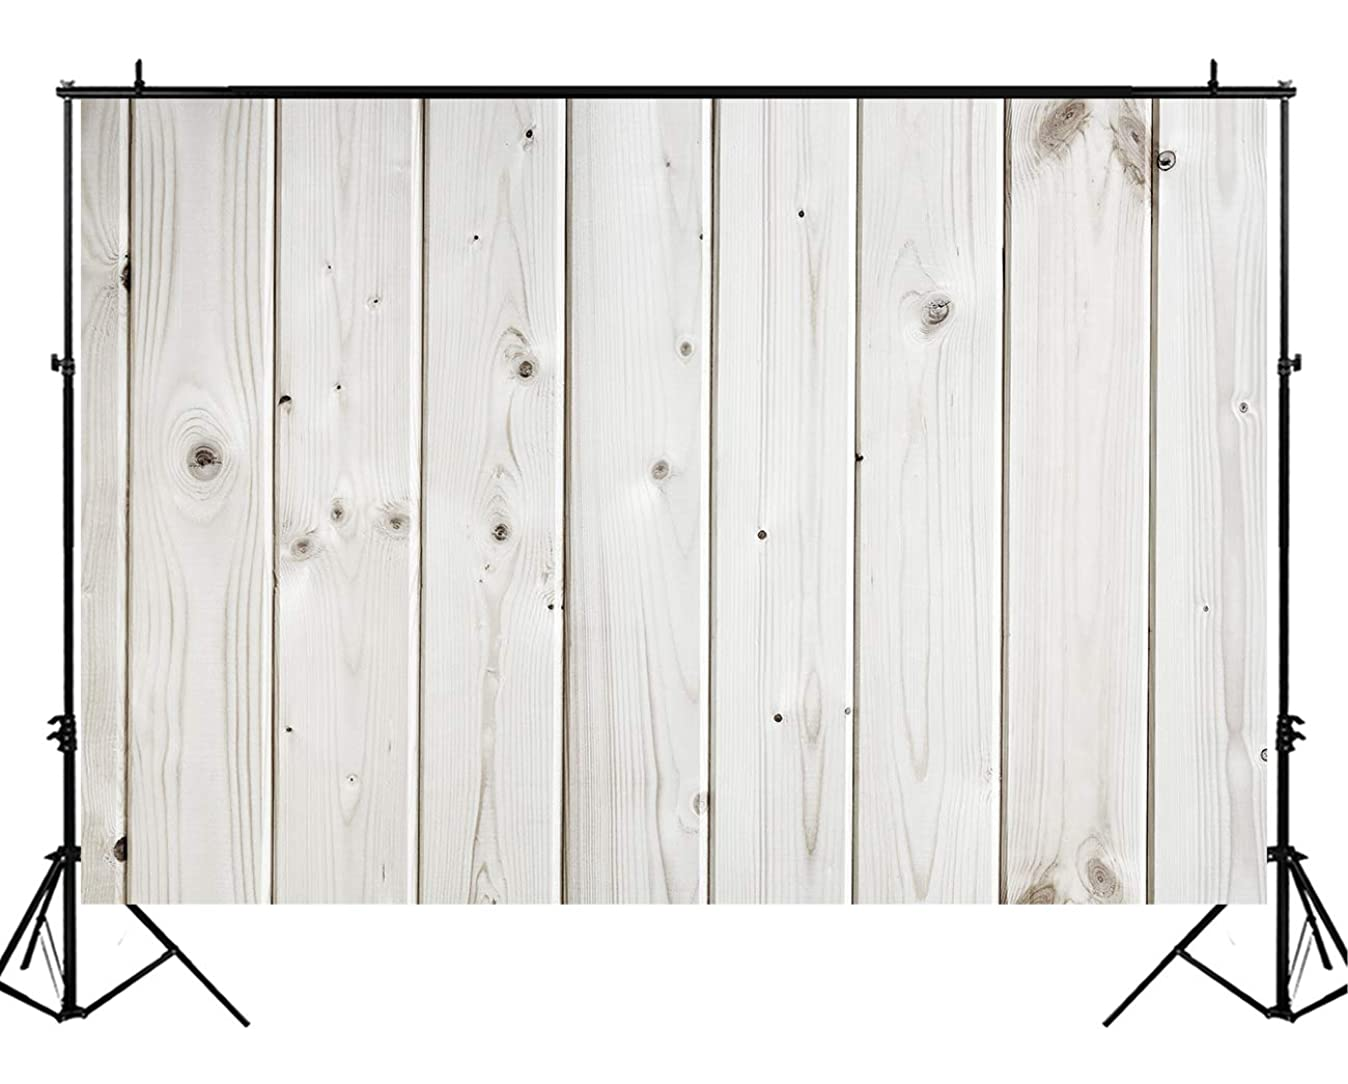 Funnytree 5X3ft Vinyl White Wood Backdrop Wooden Board Photography Bokeh Rustic Faux Panel Flat Background Portrait Retro Texture Photo Booth Studio Props Poster Photoshoot Photografia v0935025756